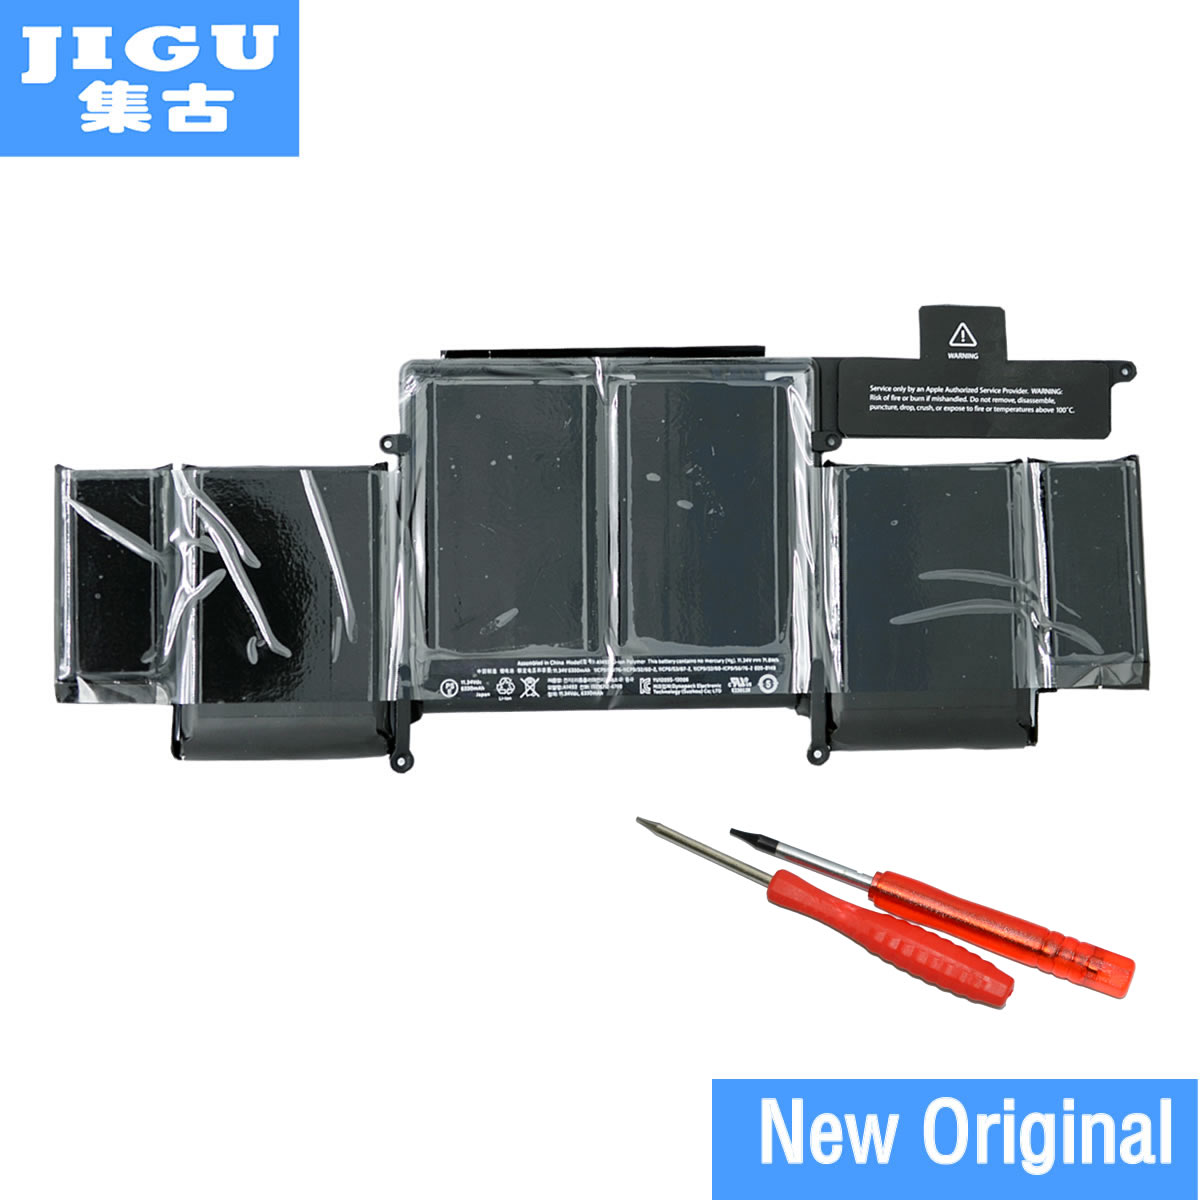 JIGU A1493 Için Orijinal Laptop Batarya APPLE Macbook Pro Retina 13 A1502 2013 ME864 ME865 11.34 V 71.8WH